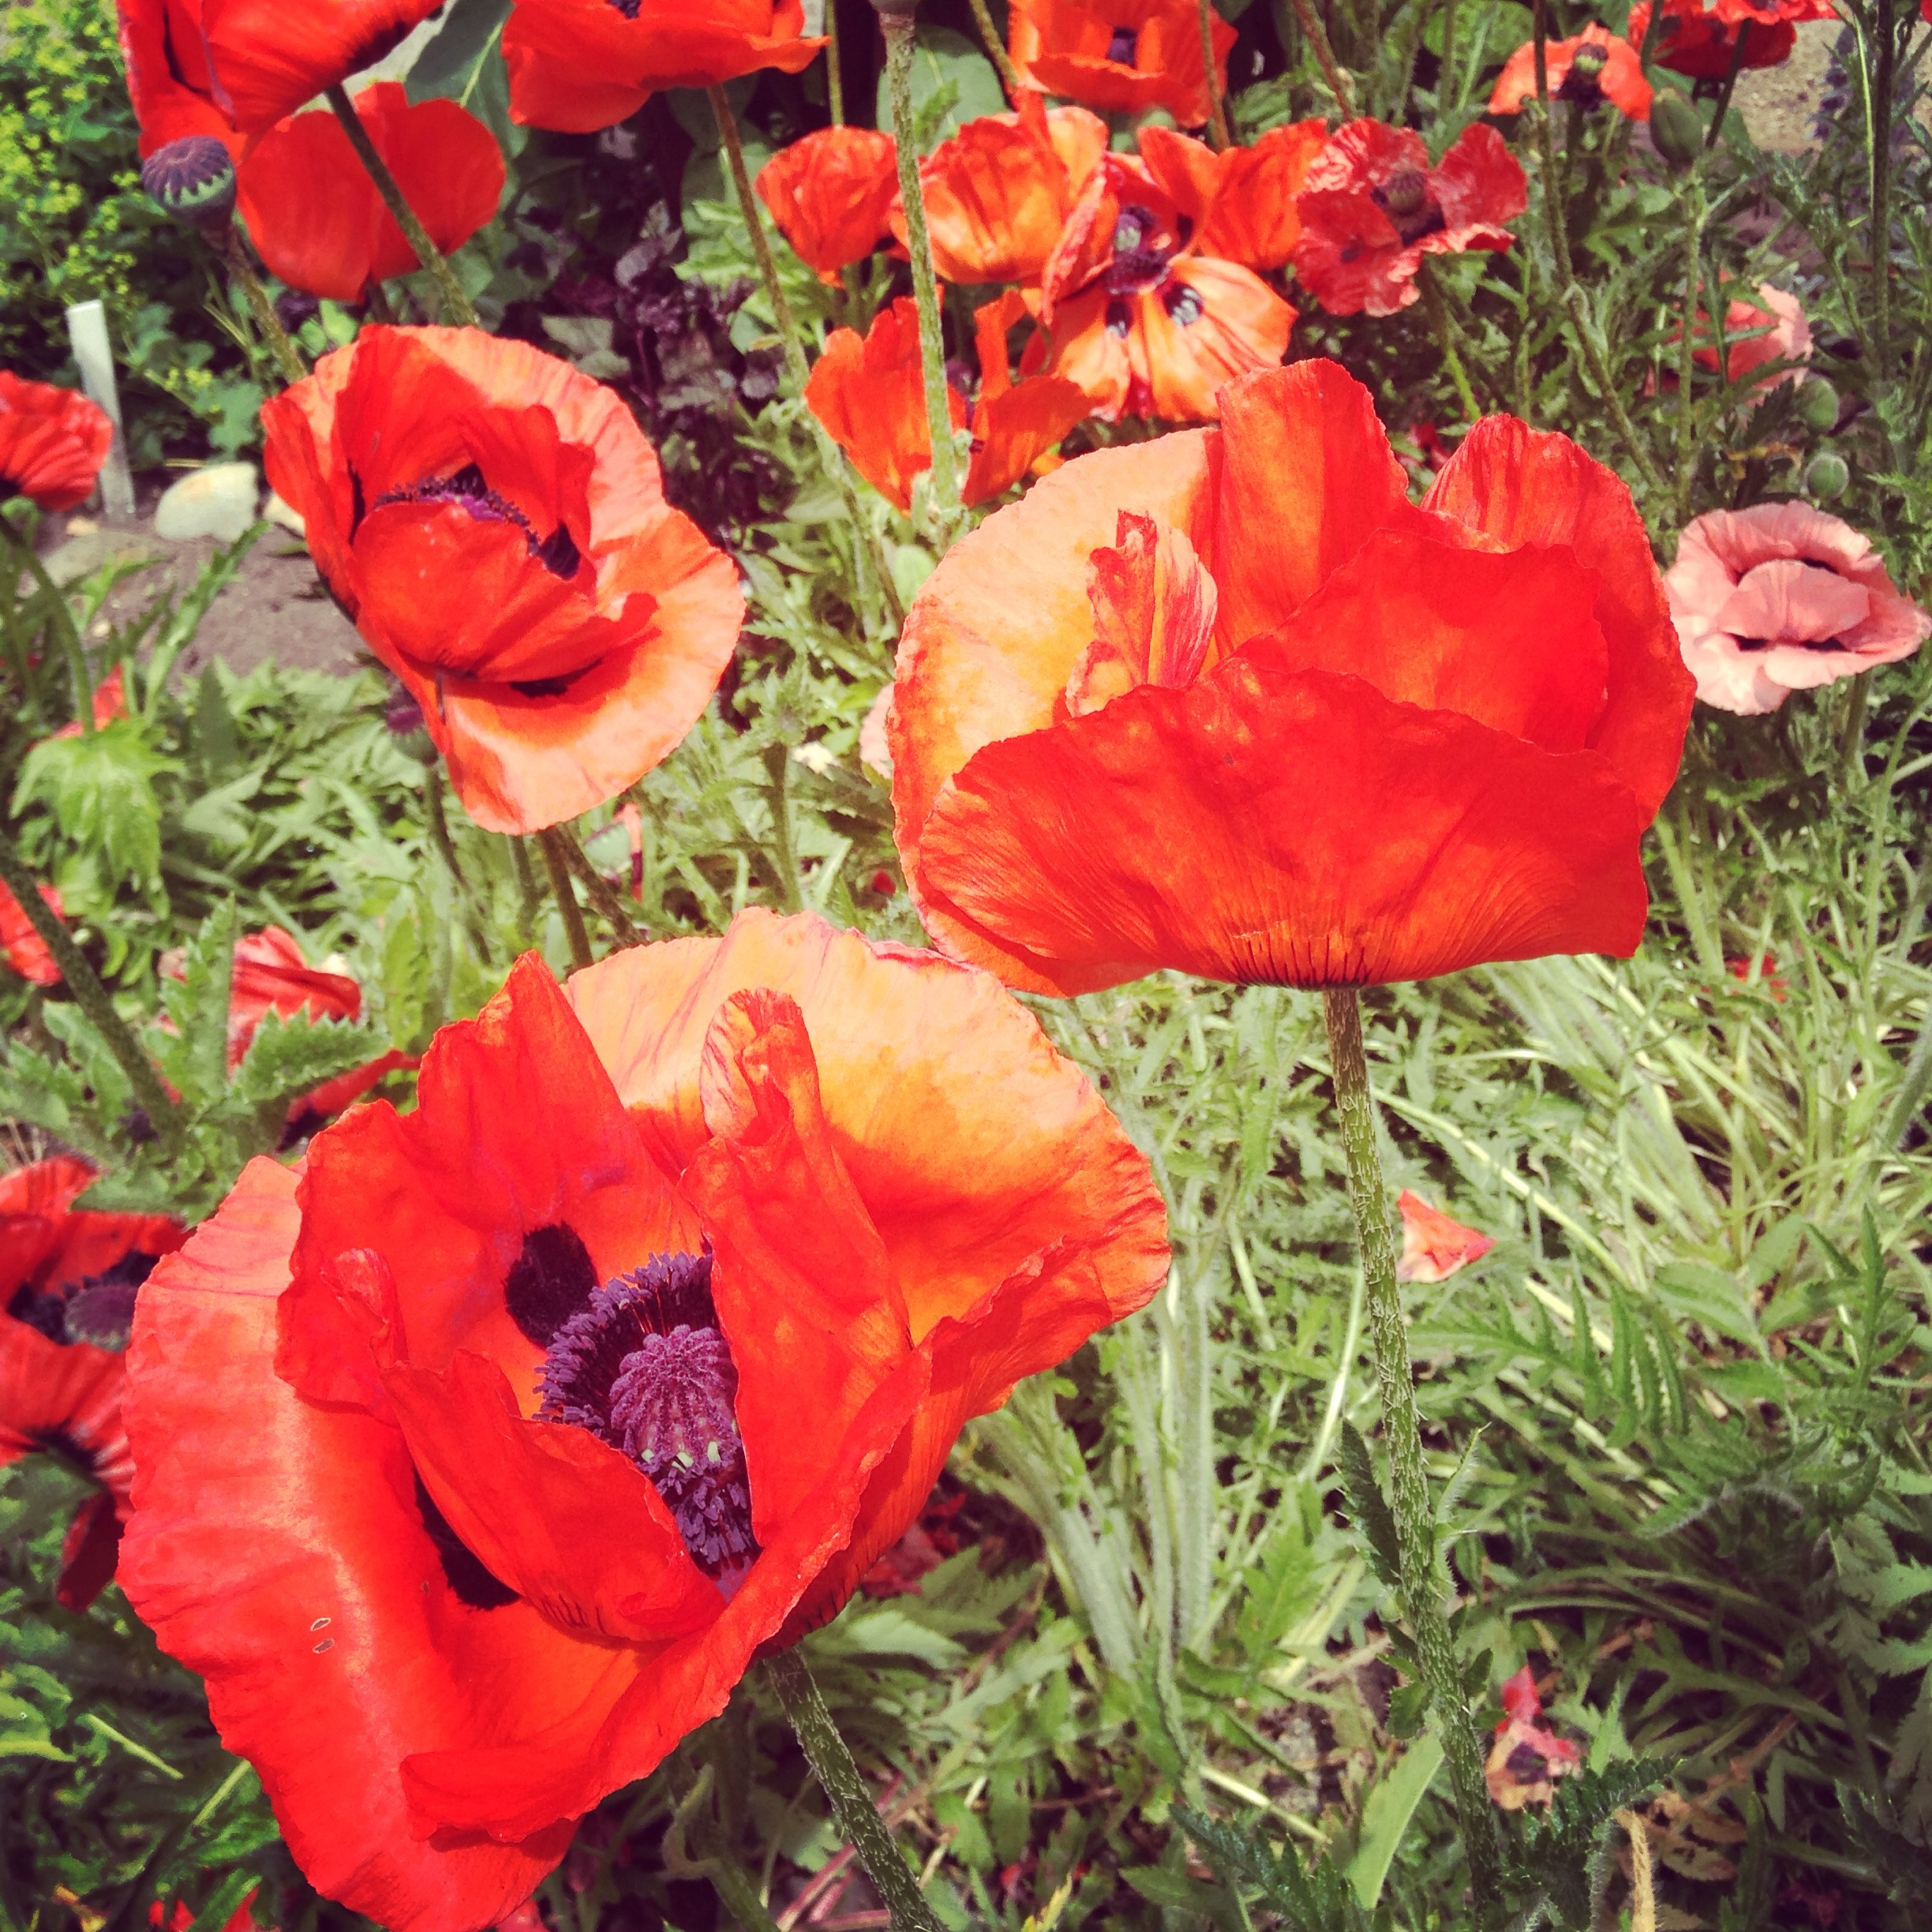 Poppies in Seattle